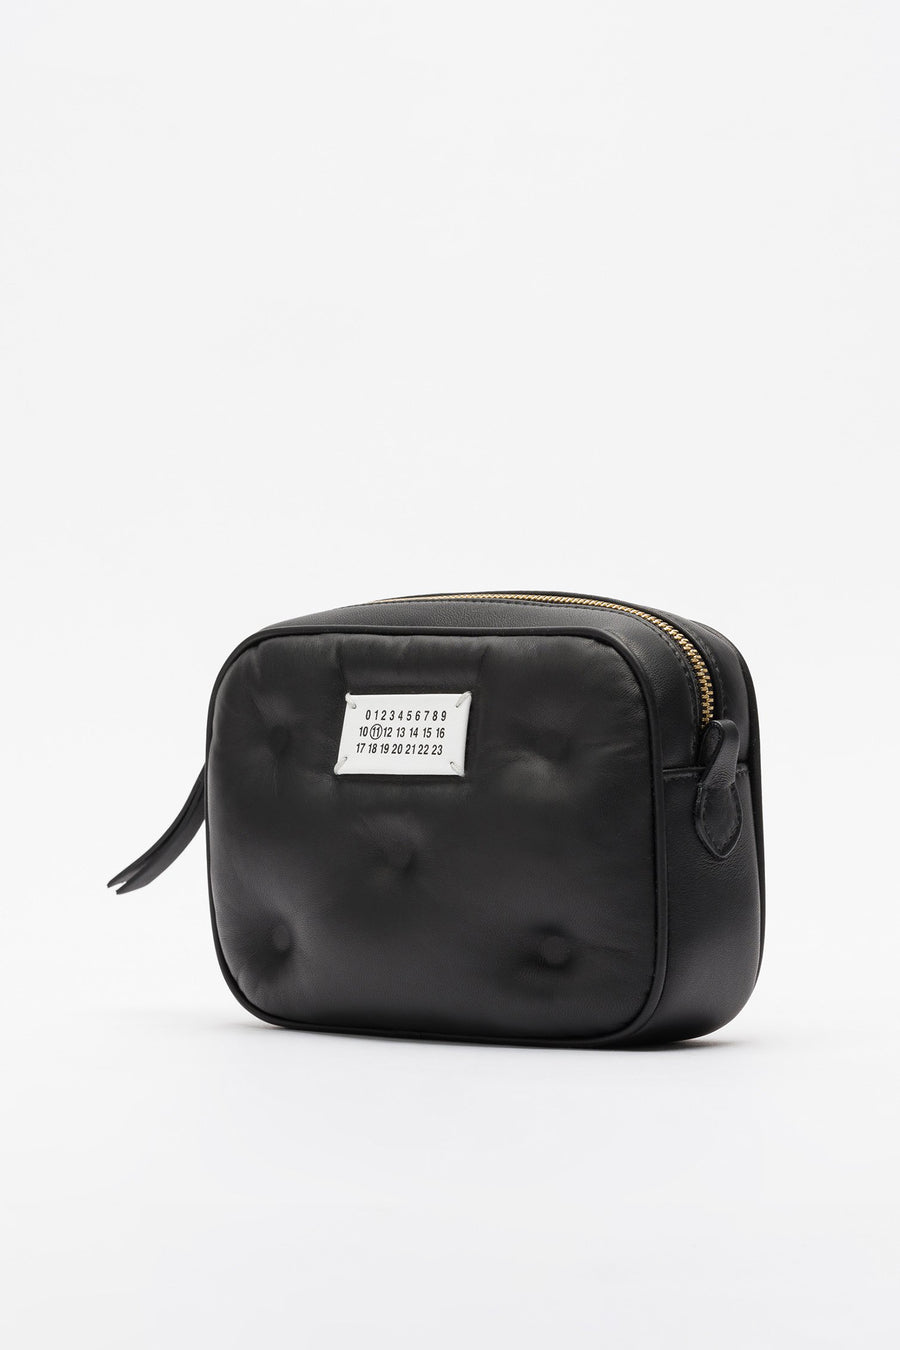 Maison Margiela Mini Tufted Shoulder Bag in Black - Notre